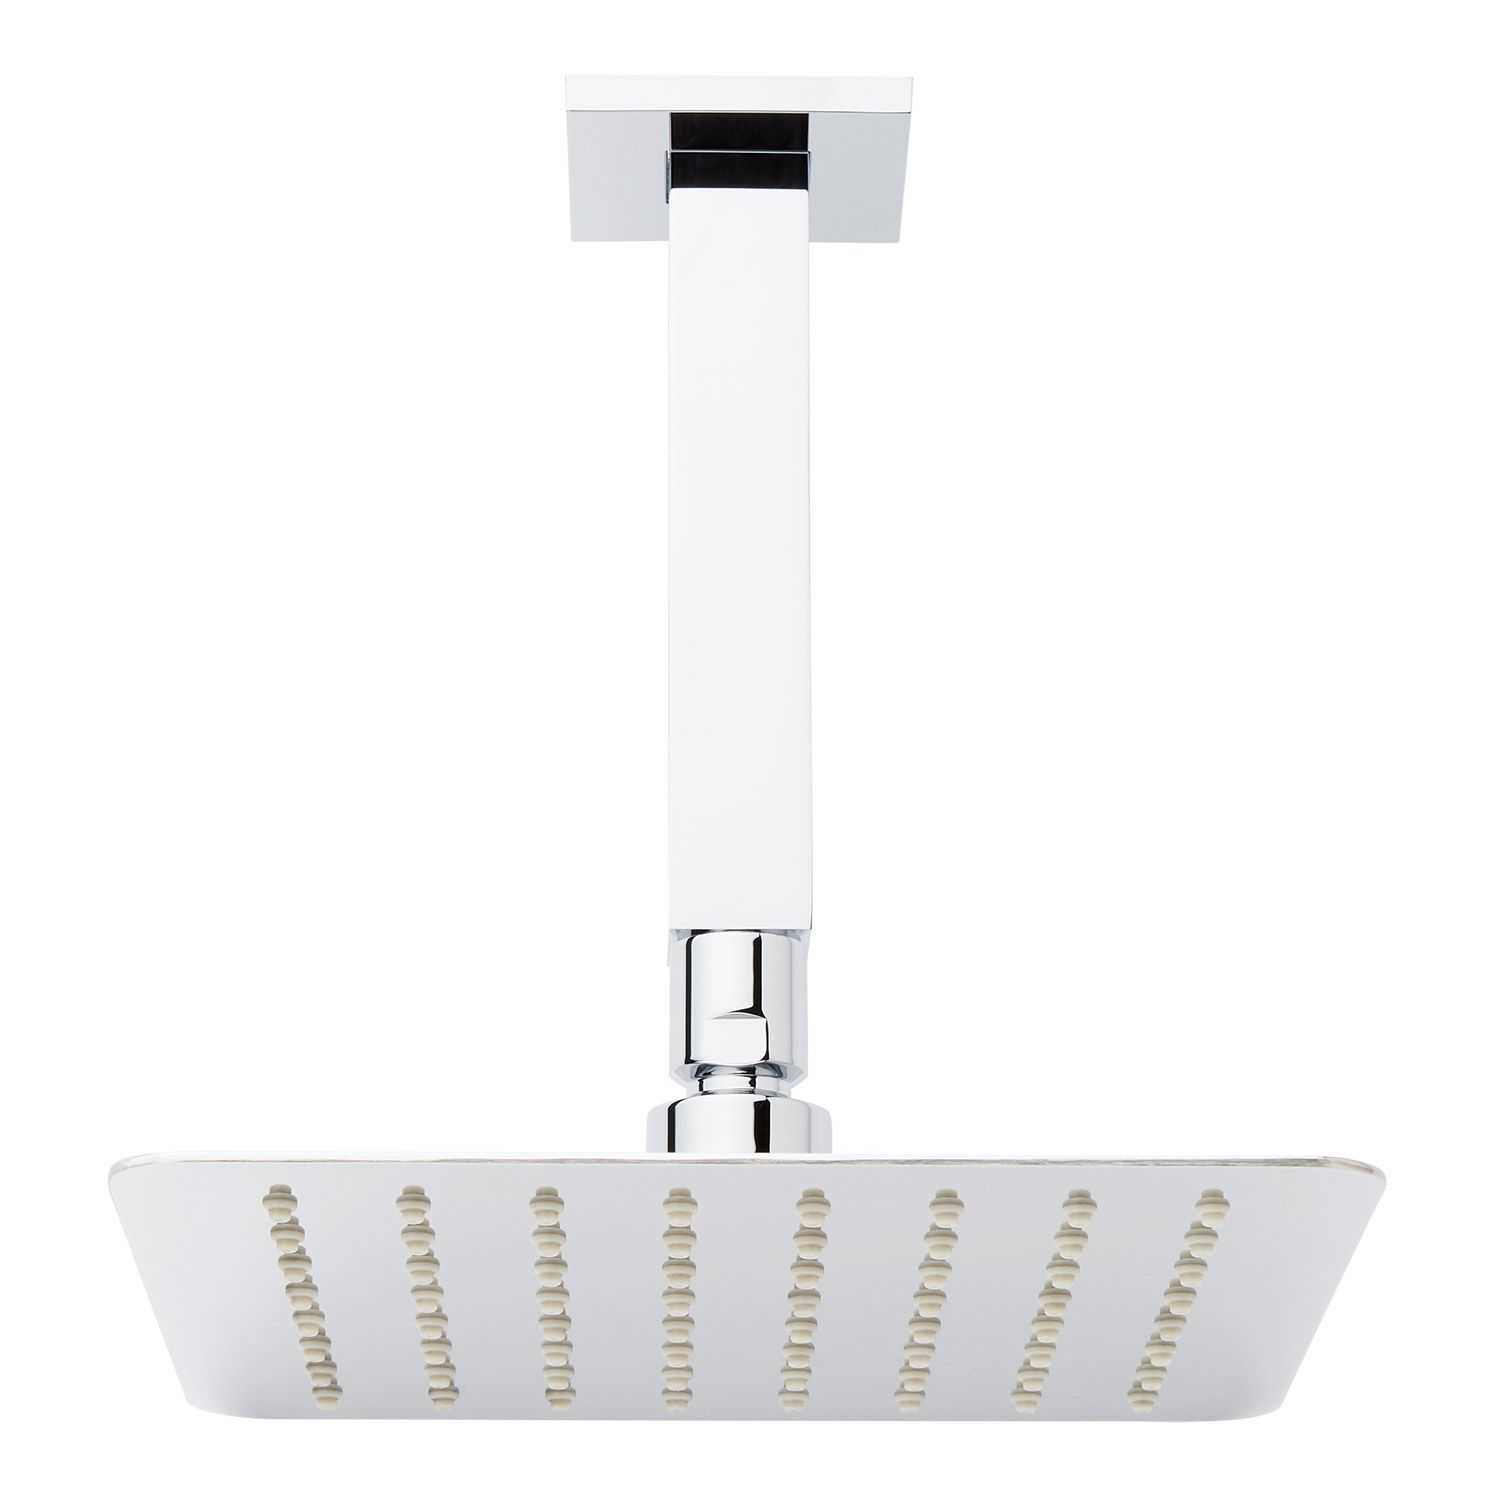 8 modern square rainfall shower head with 6 square